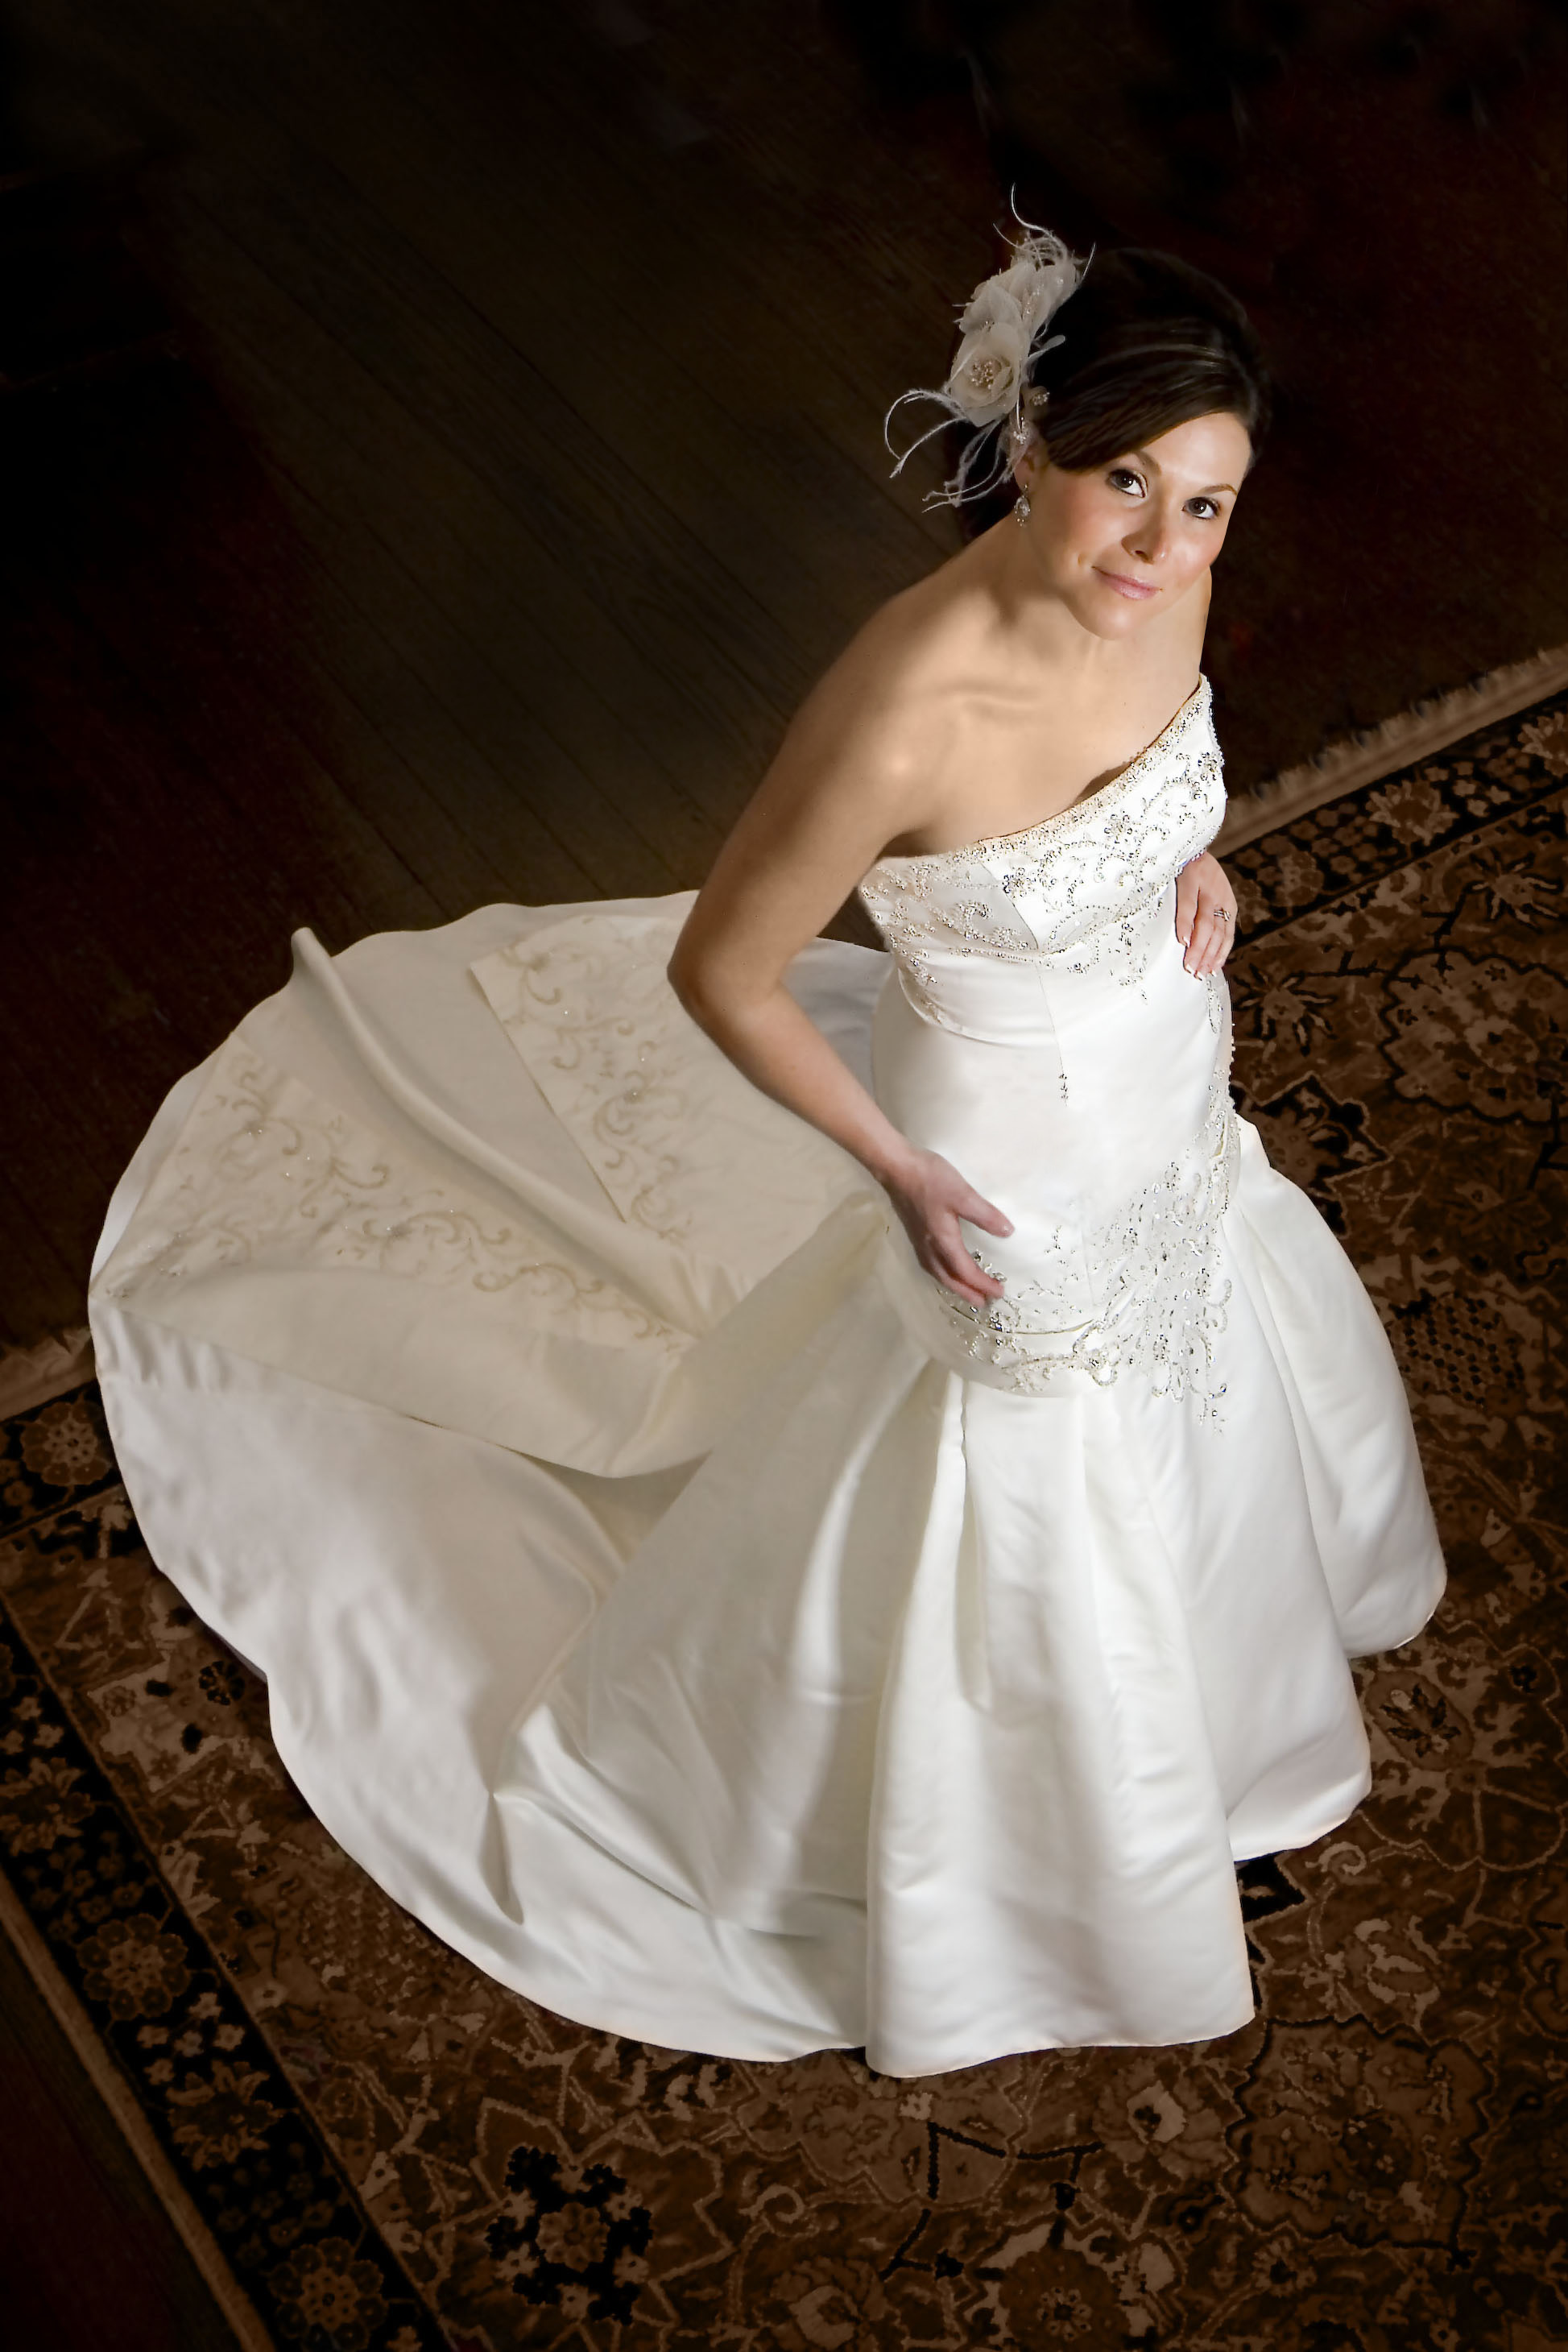 Classic Bridal Portrait pose with slightly unique overhead angle. Taken at the Governors Club Mansion in Nashville, Tennessee. ©Karrie Porter